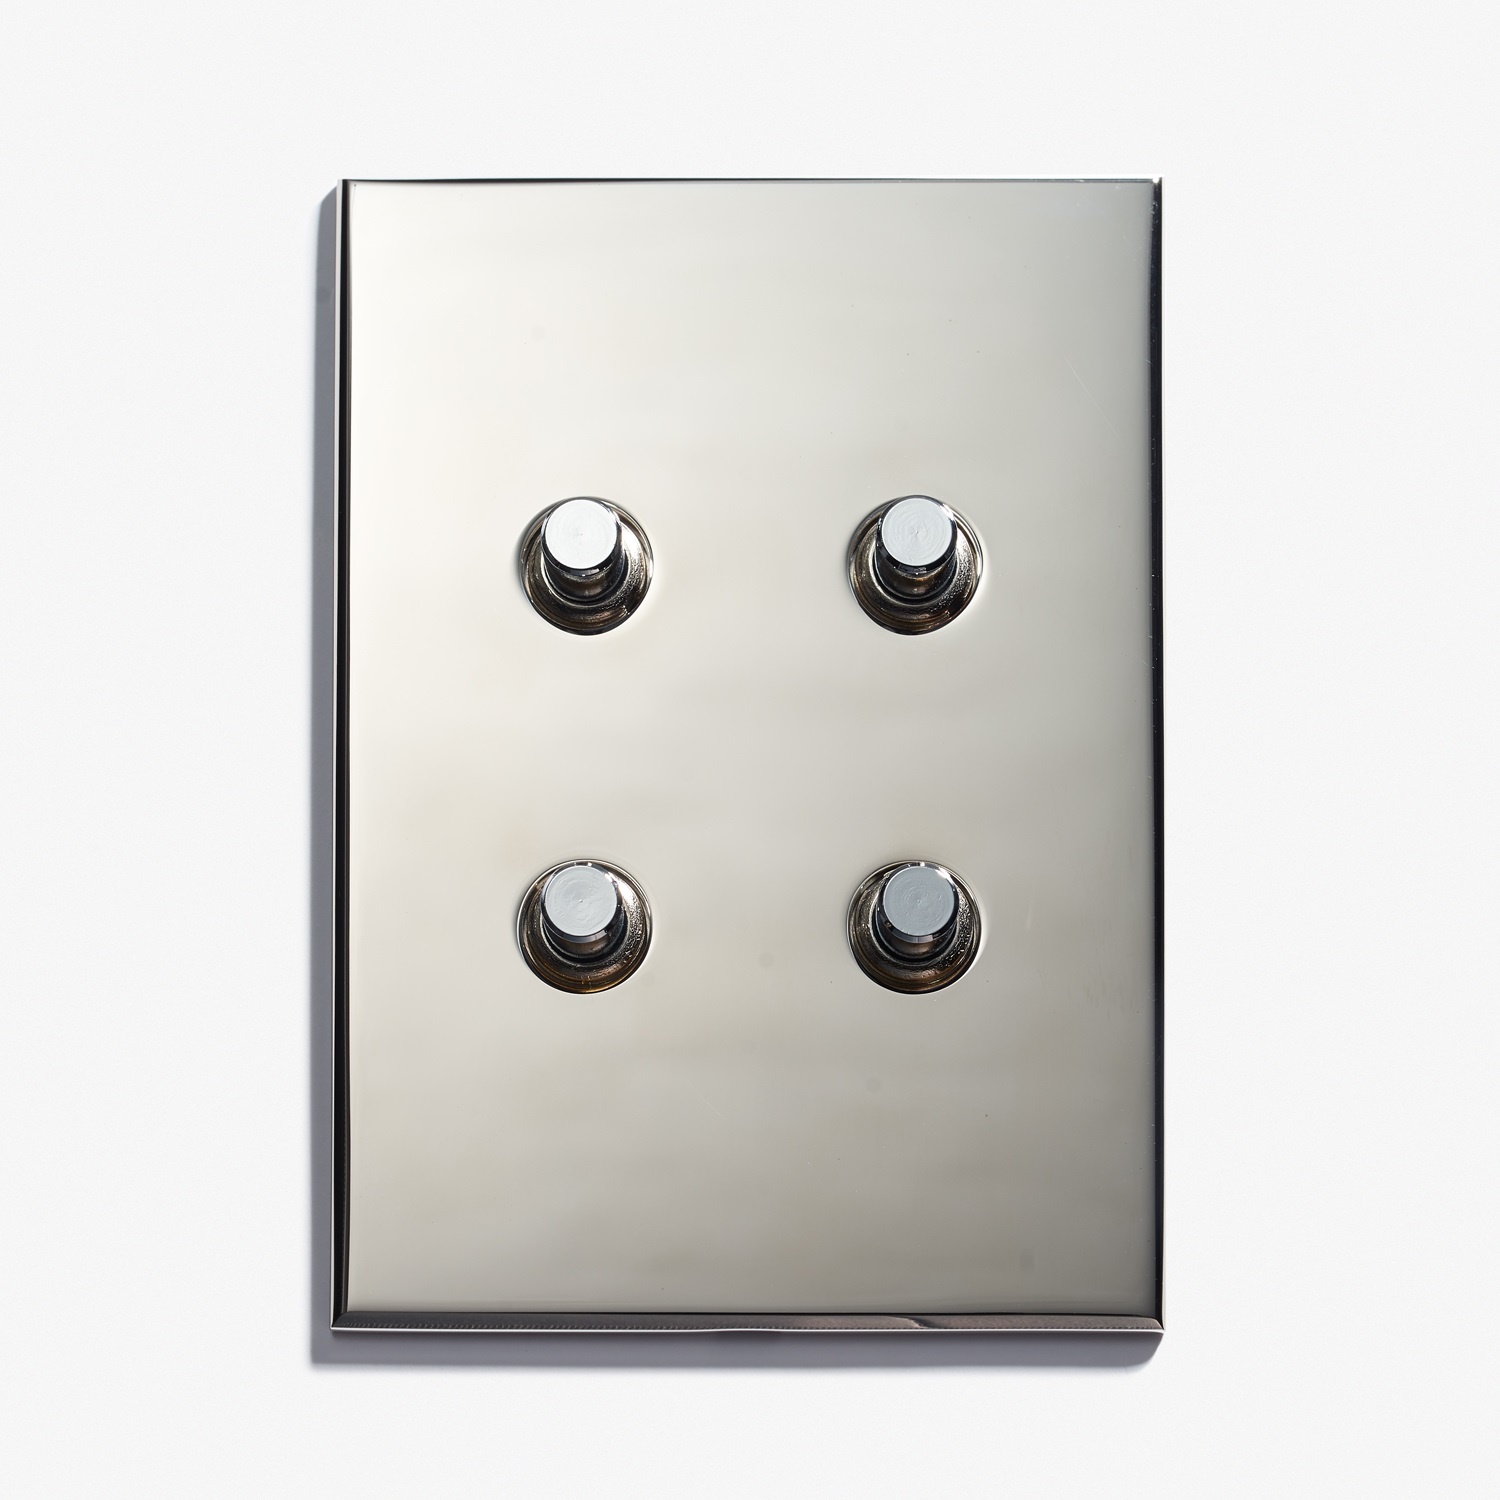 82 x 117 - 4 BP - Hidden Screws - Beveled Edge - Nickel Brillant 1   .jpg